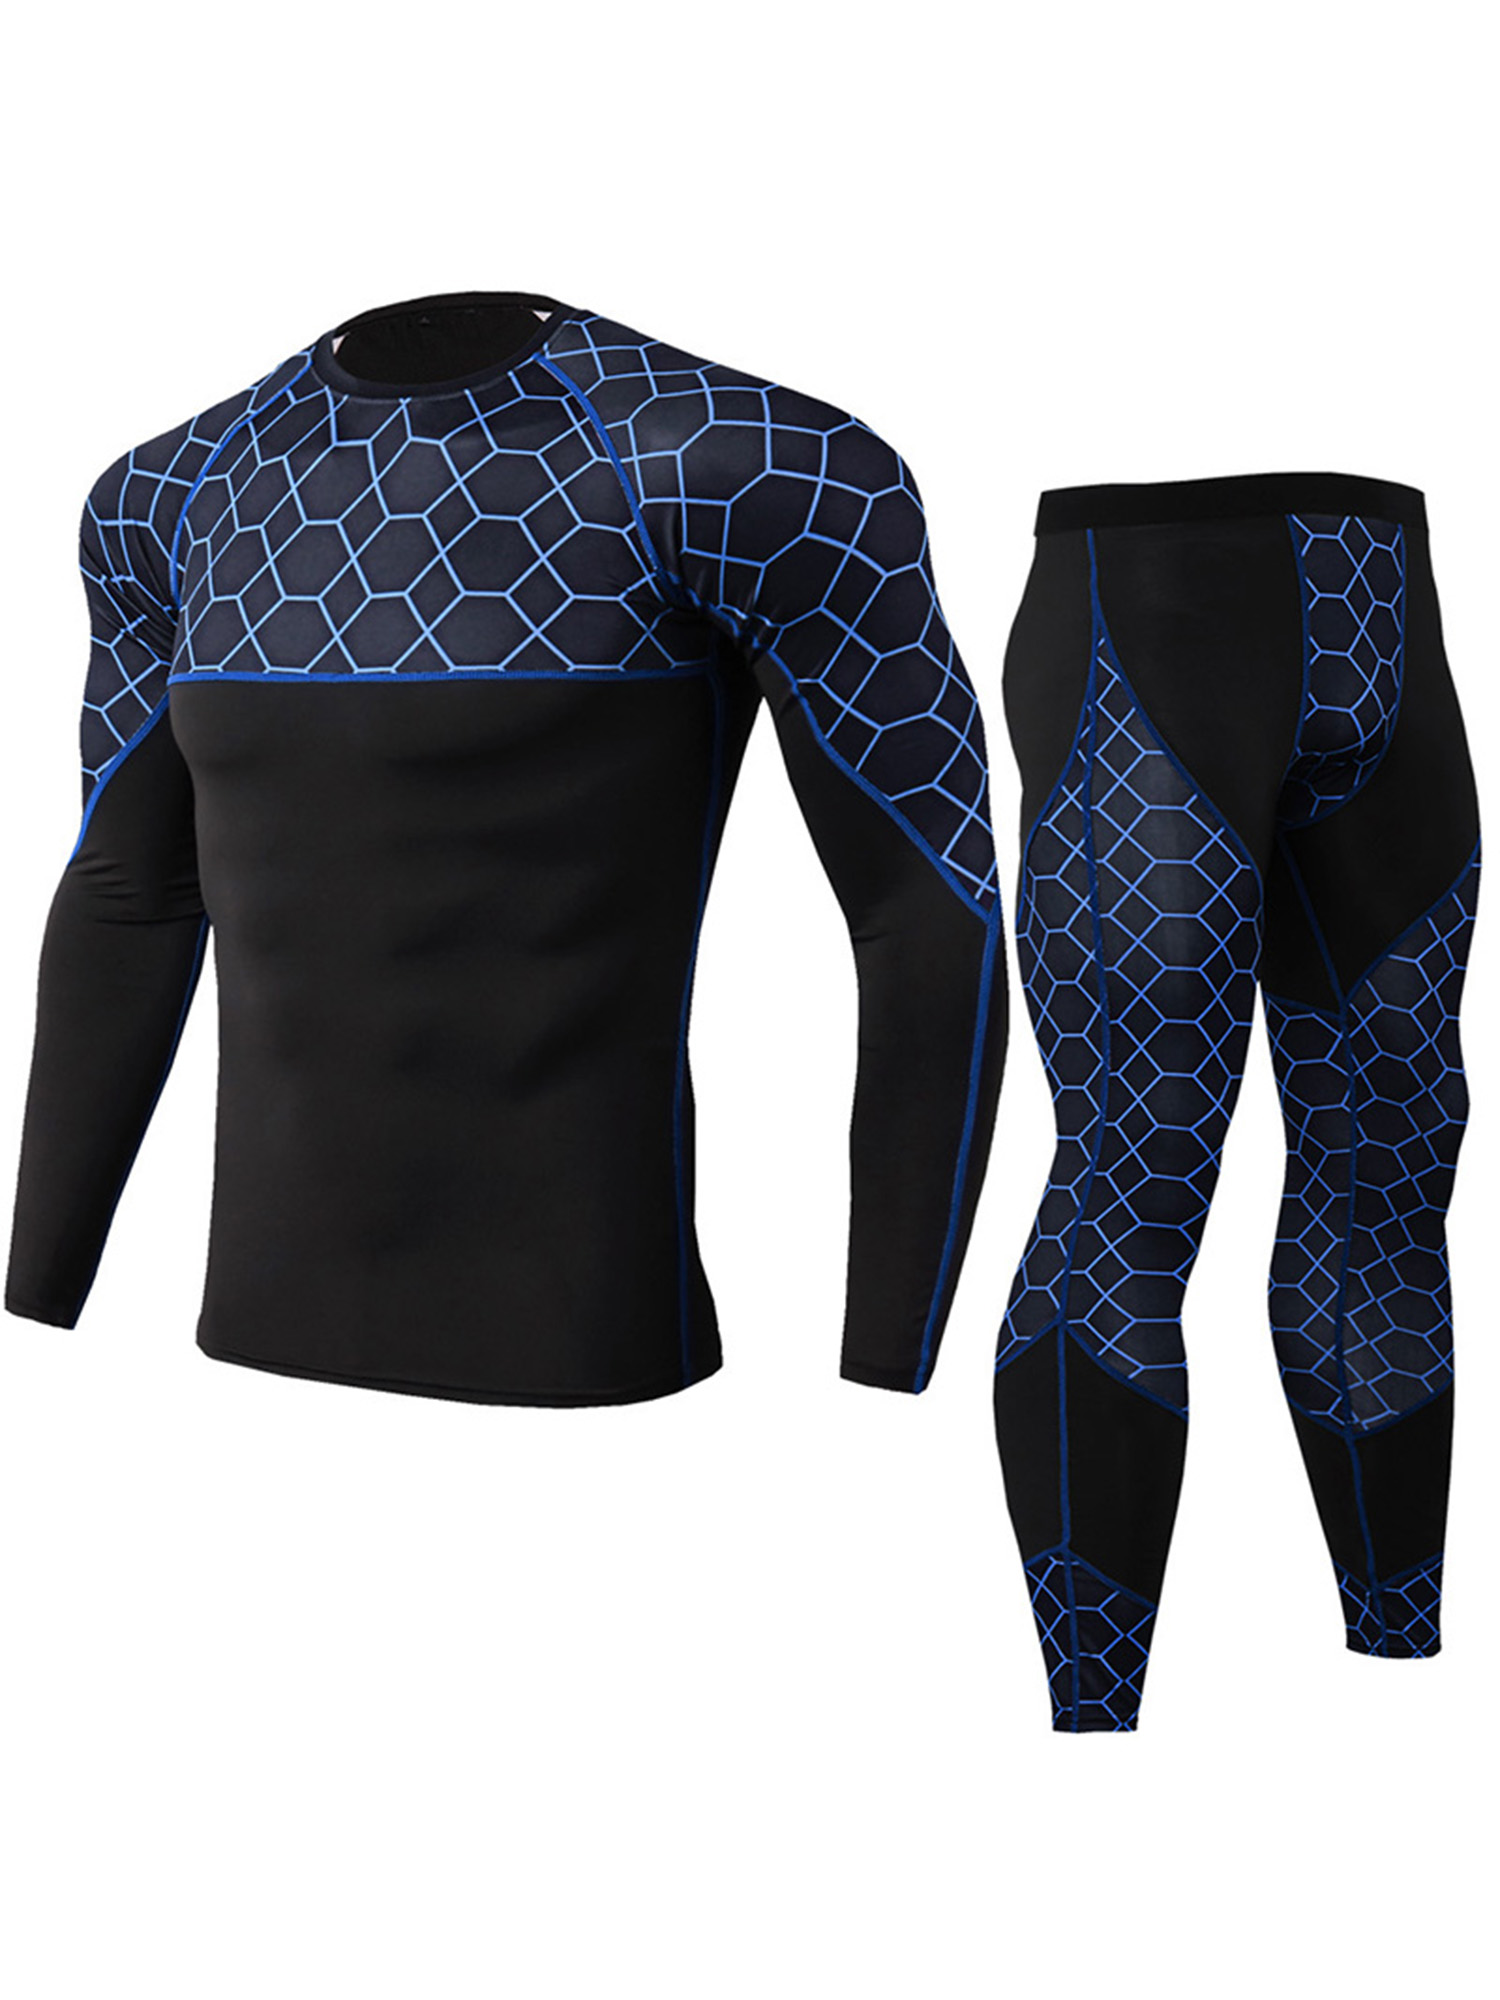 Mens Sport Compression Base Layer Set Long Johns Quick Dry Tight Top Bottom Suit